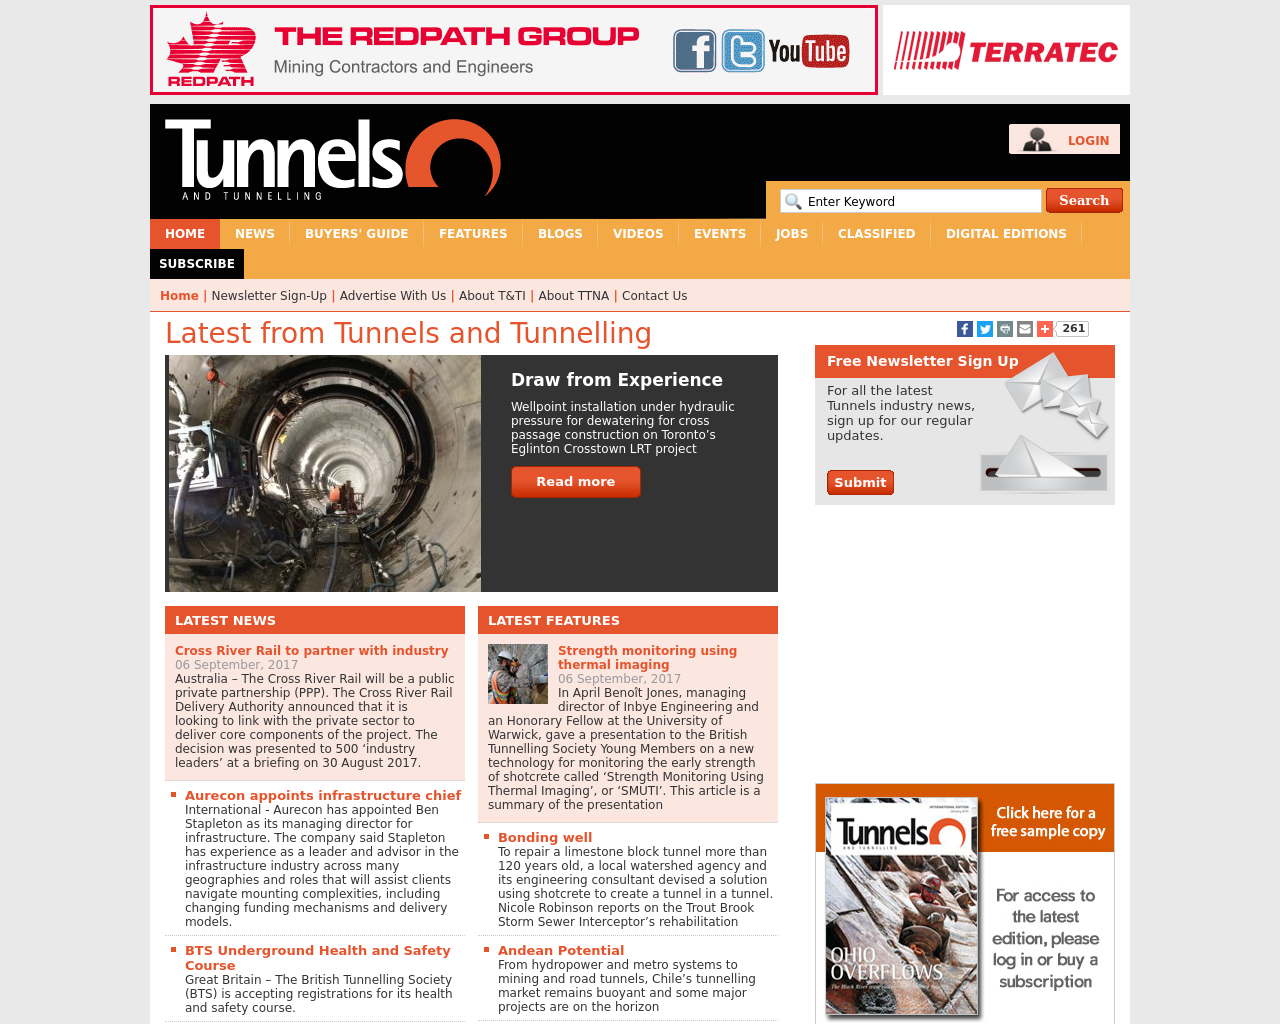 Tunnels-&-Tunnelling-Advertising-Reviews-Pricing